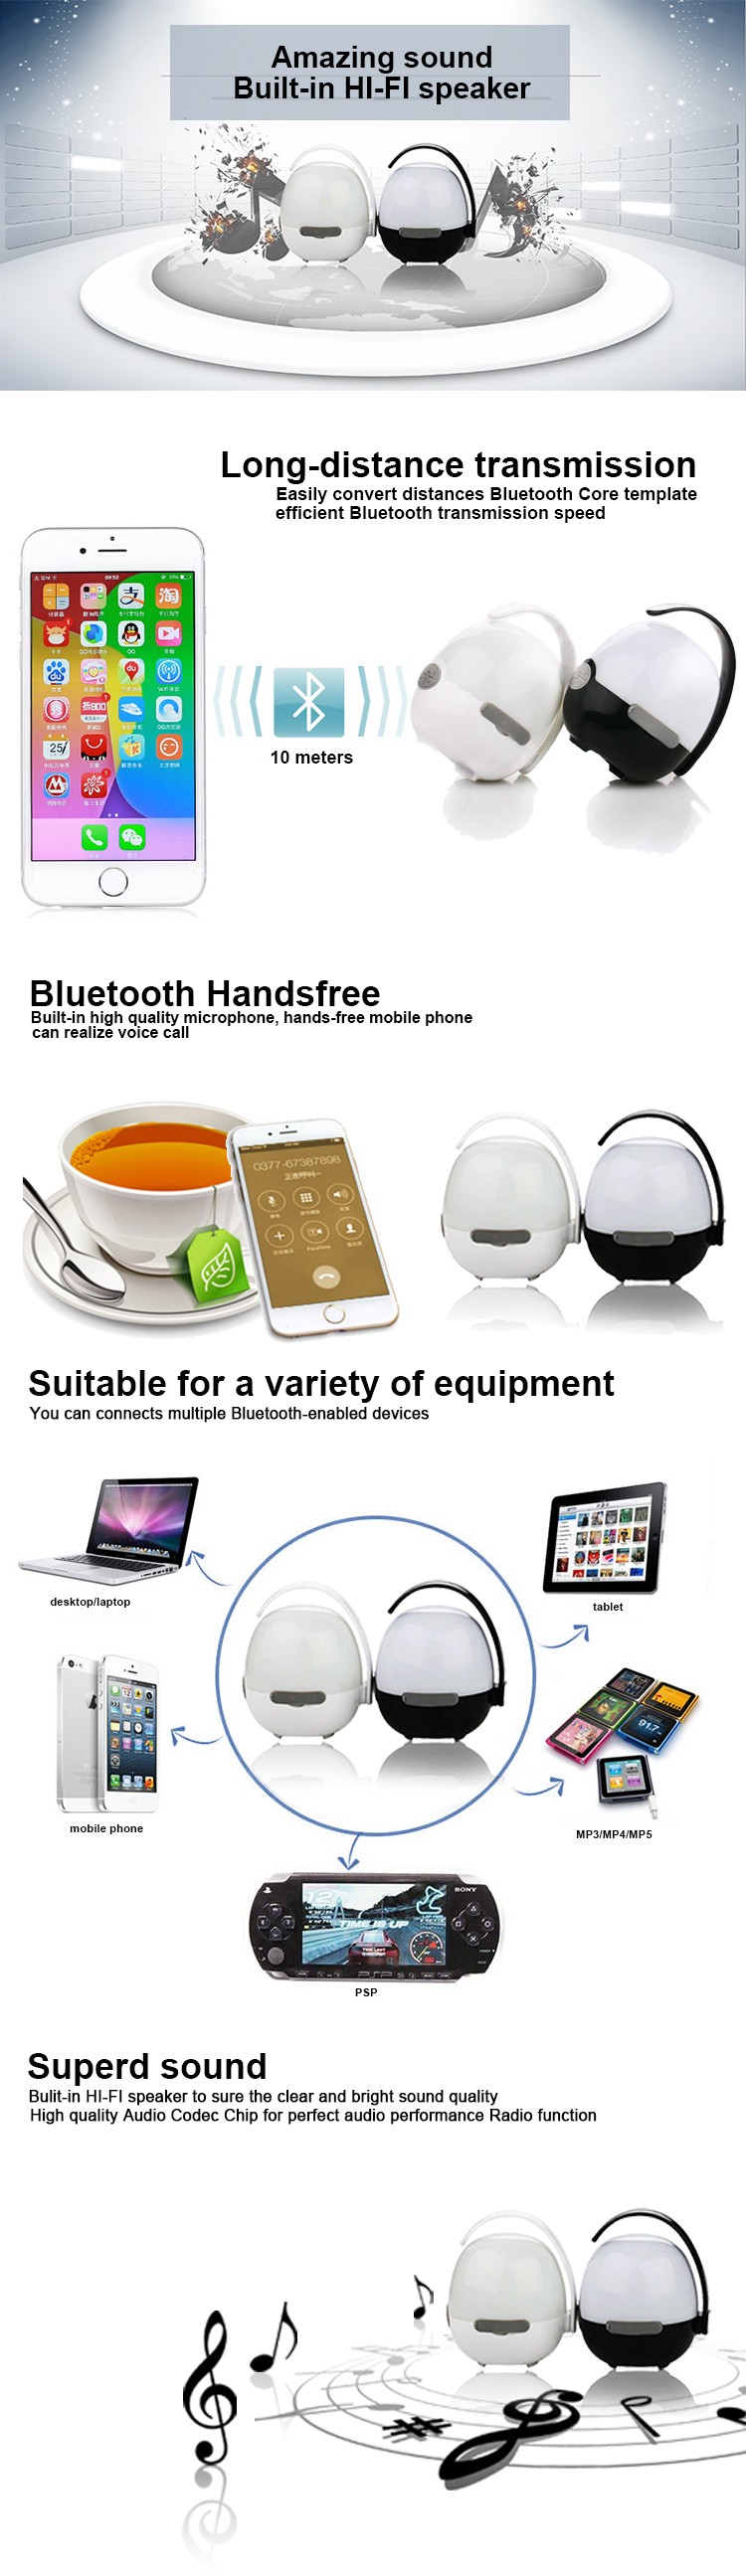 2016 NEW! portable sound system audio equipment speakers for the beach